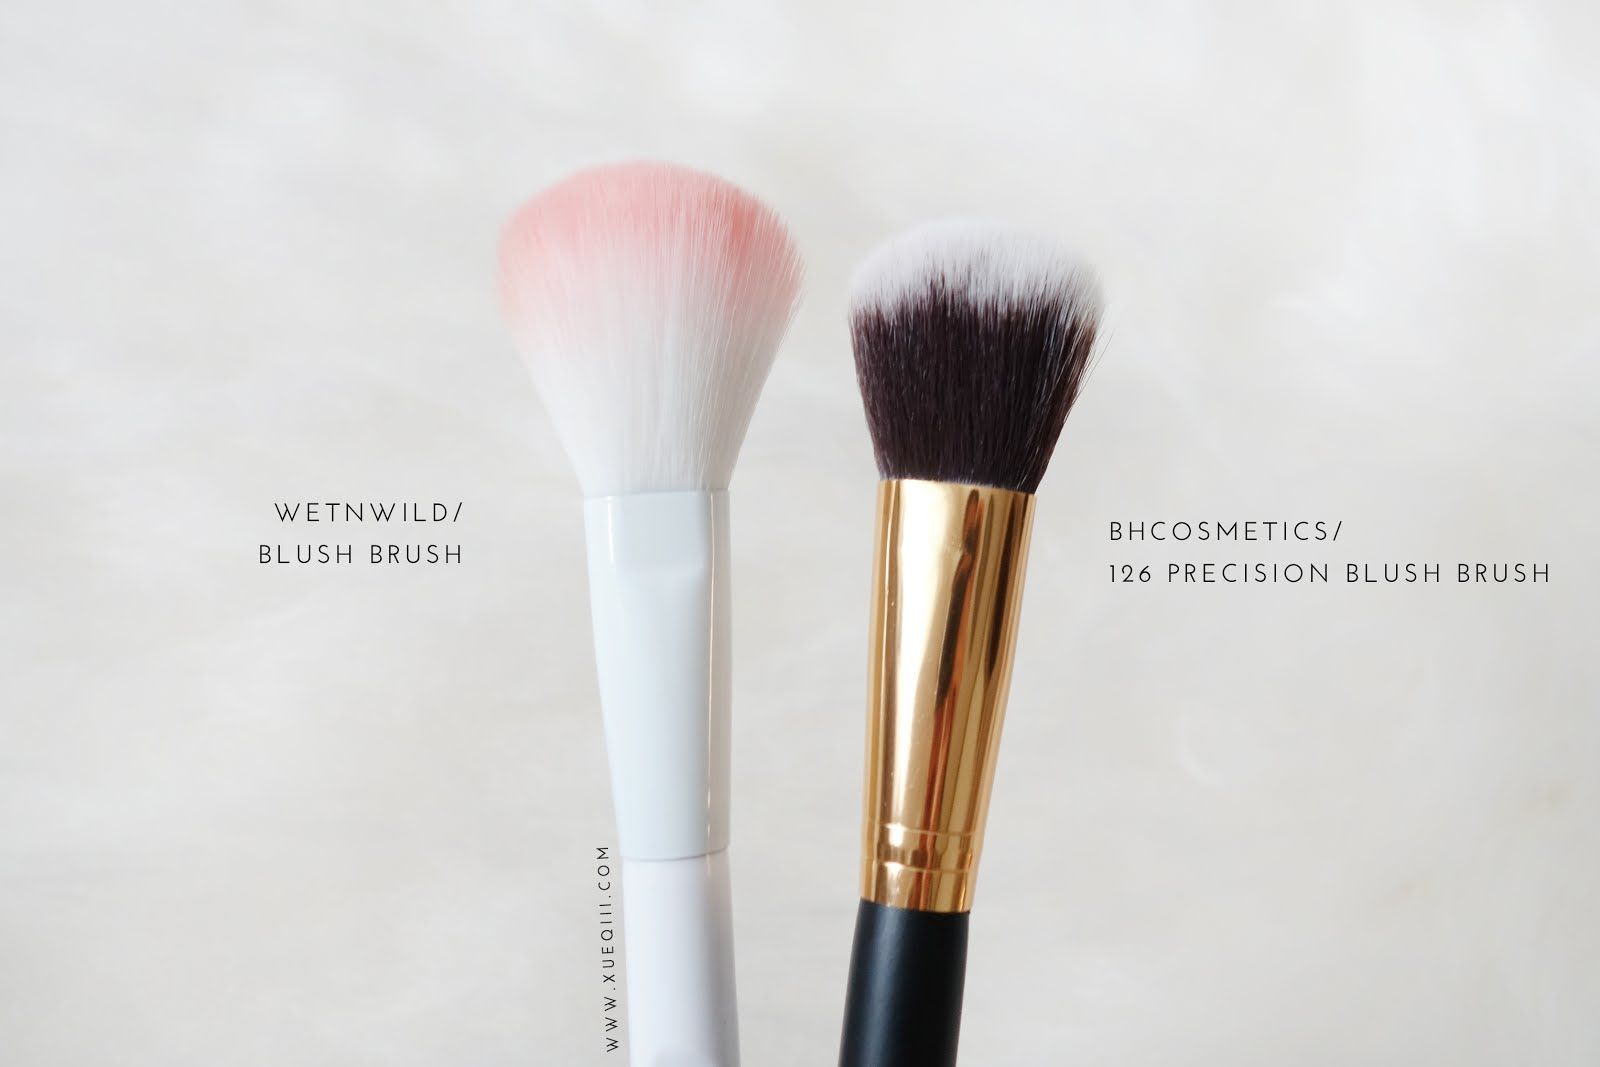 Pointed Powder Brush by e.l.f. #14